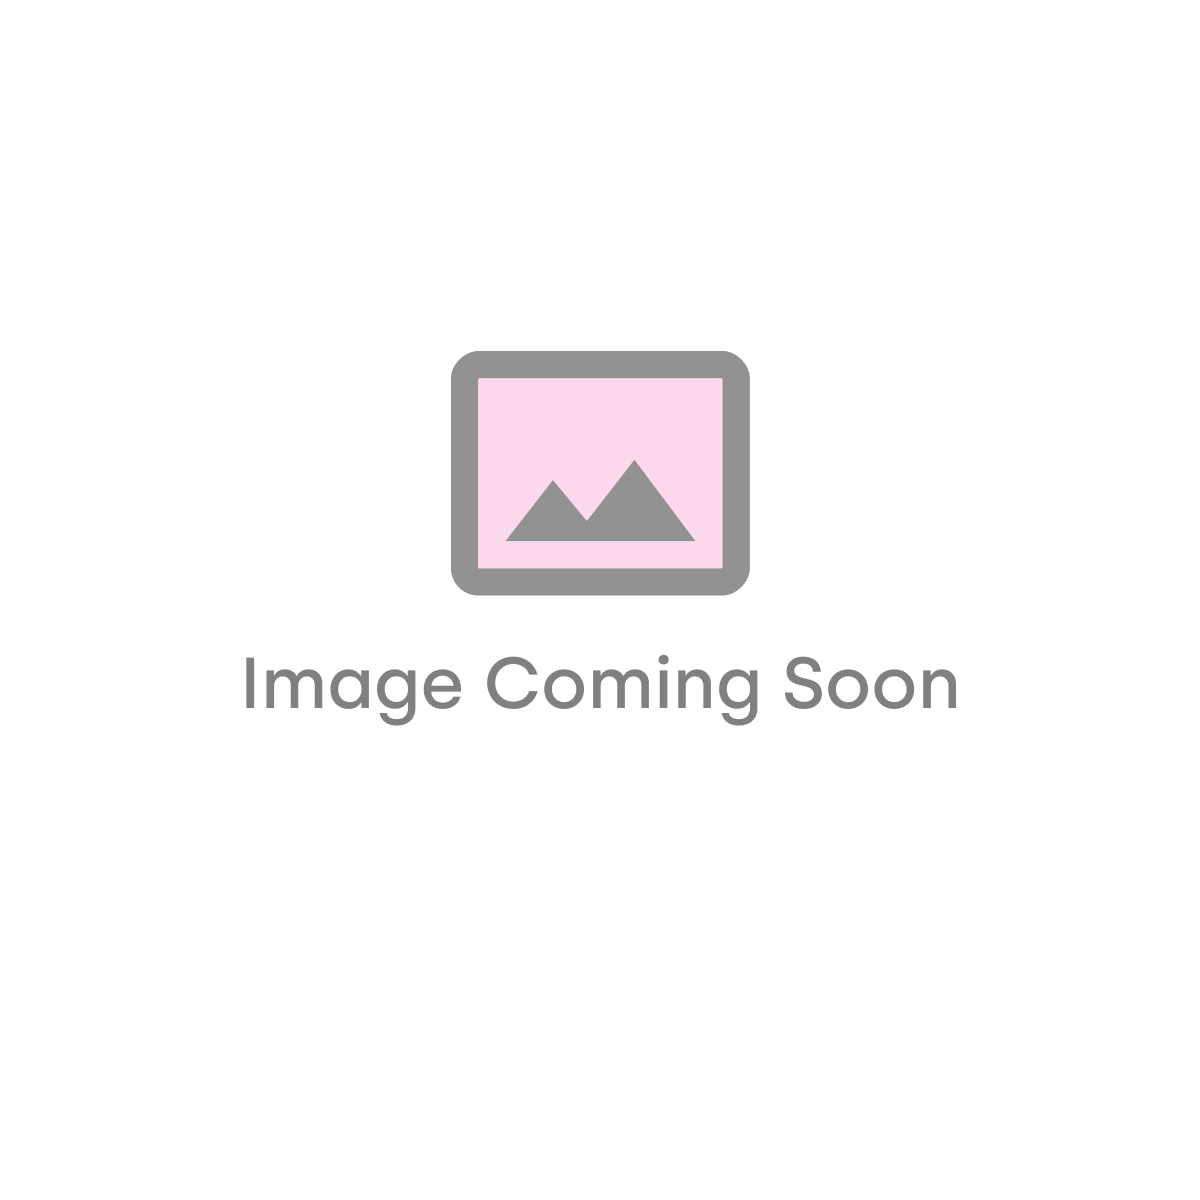 Ainhoa Decor Blue 25 x 75cm Ceramic Tile - 1.12sqm perbox (18692)